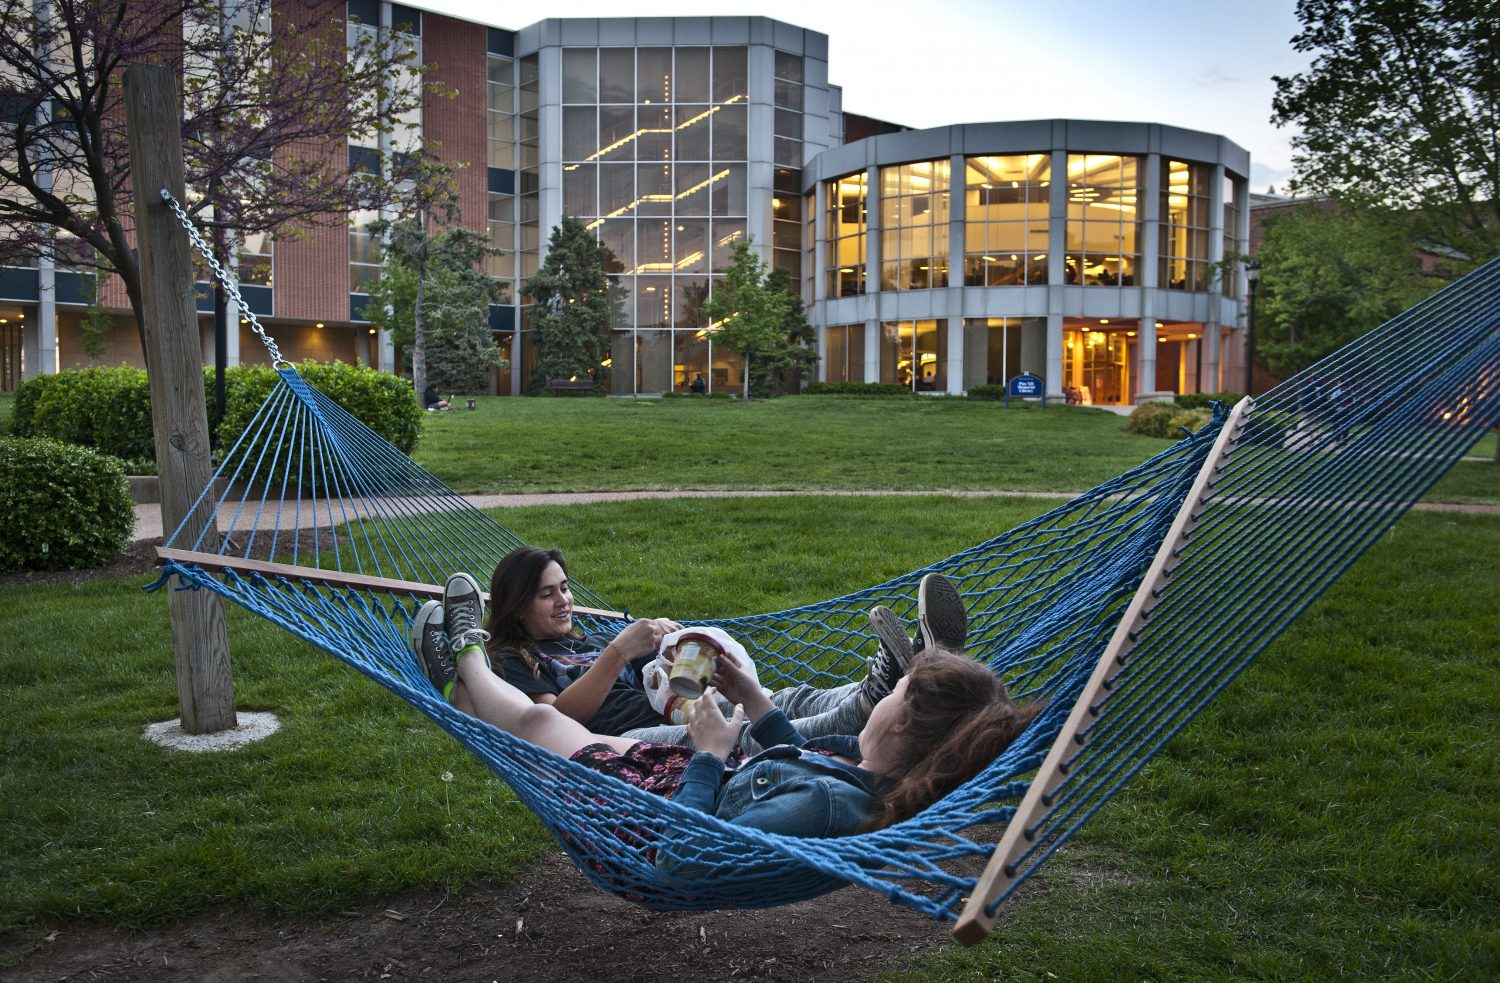 Twilight+downtime%3A+Two+students+eat+ice+cream+on+one+of+campus%E2%80%99s+signature+blue+hammocks.+Students+have+supplemented+the+hammock+shortage+with+a+portable+alternative.+Courtesy+Michelle+Peltier